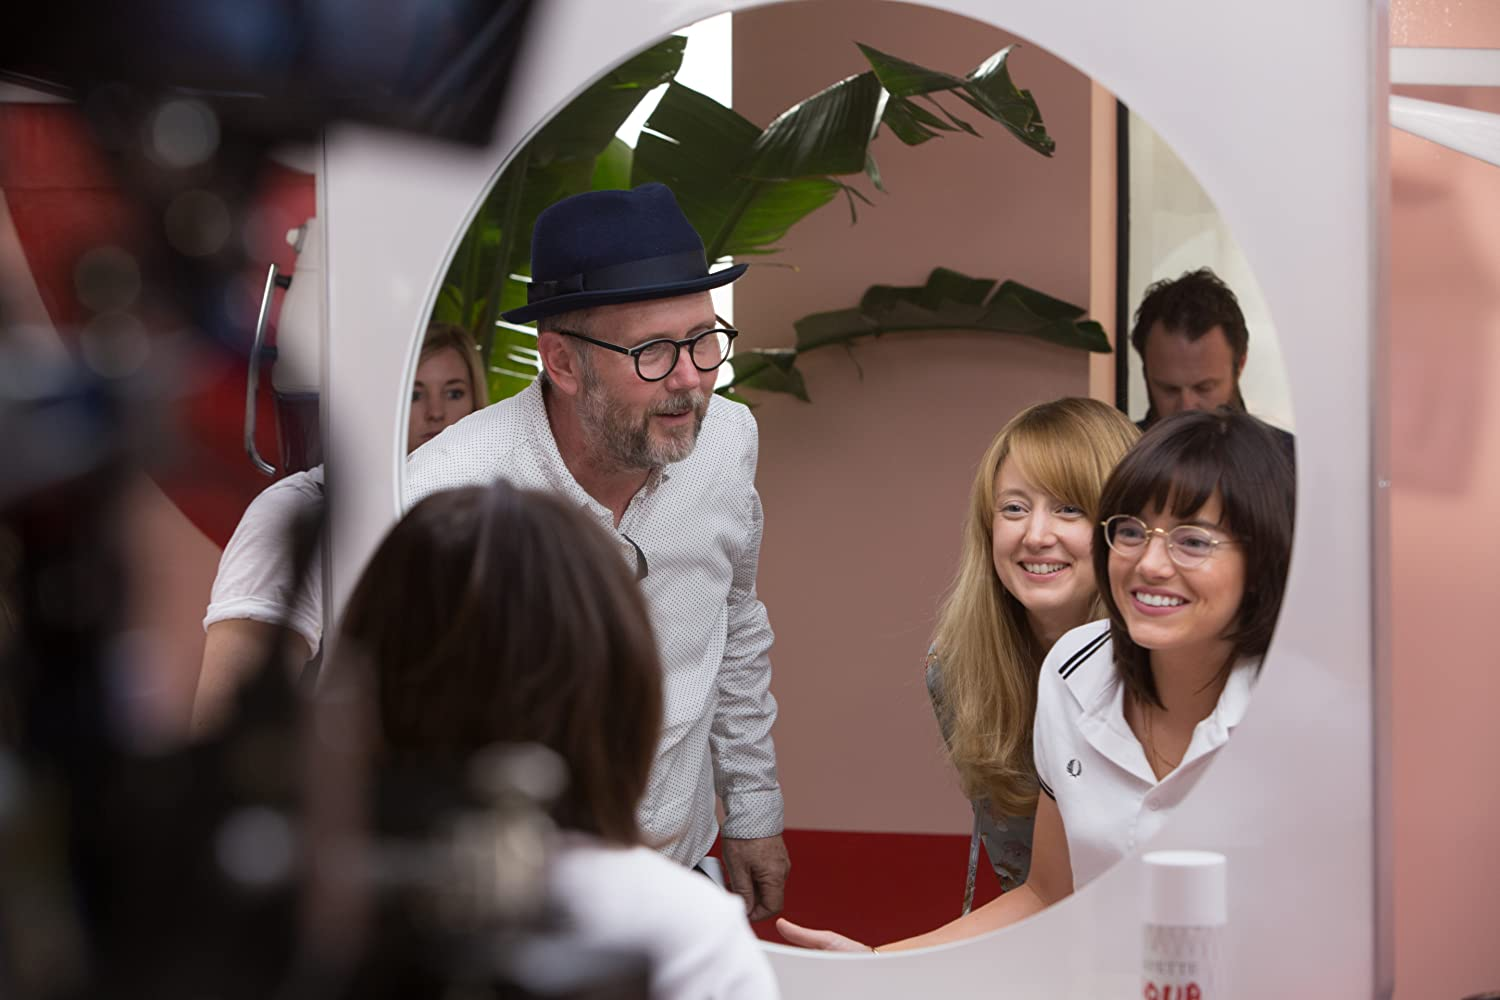 Jonathan Dayton, Emma Stone, and Andrea Riseborough in Battle of the Sexes (2017)